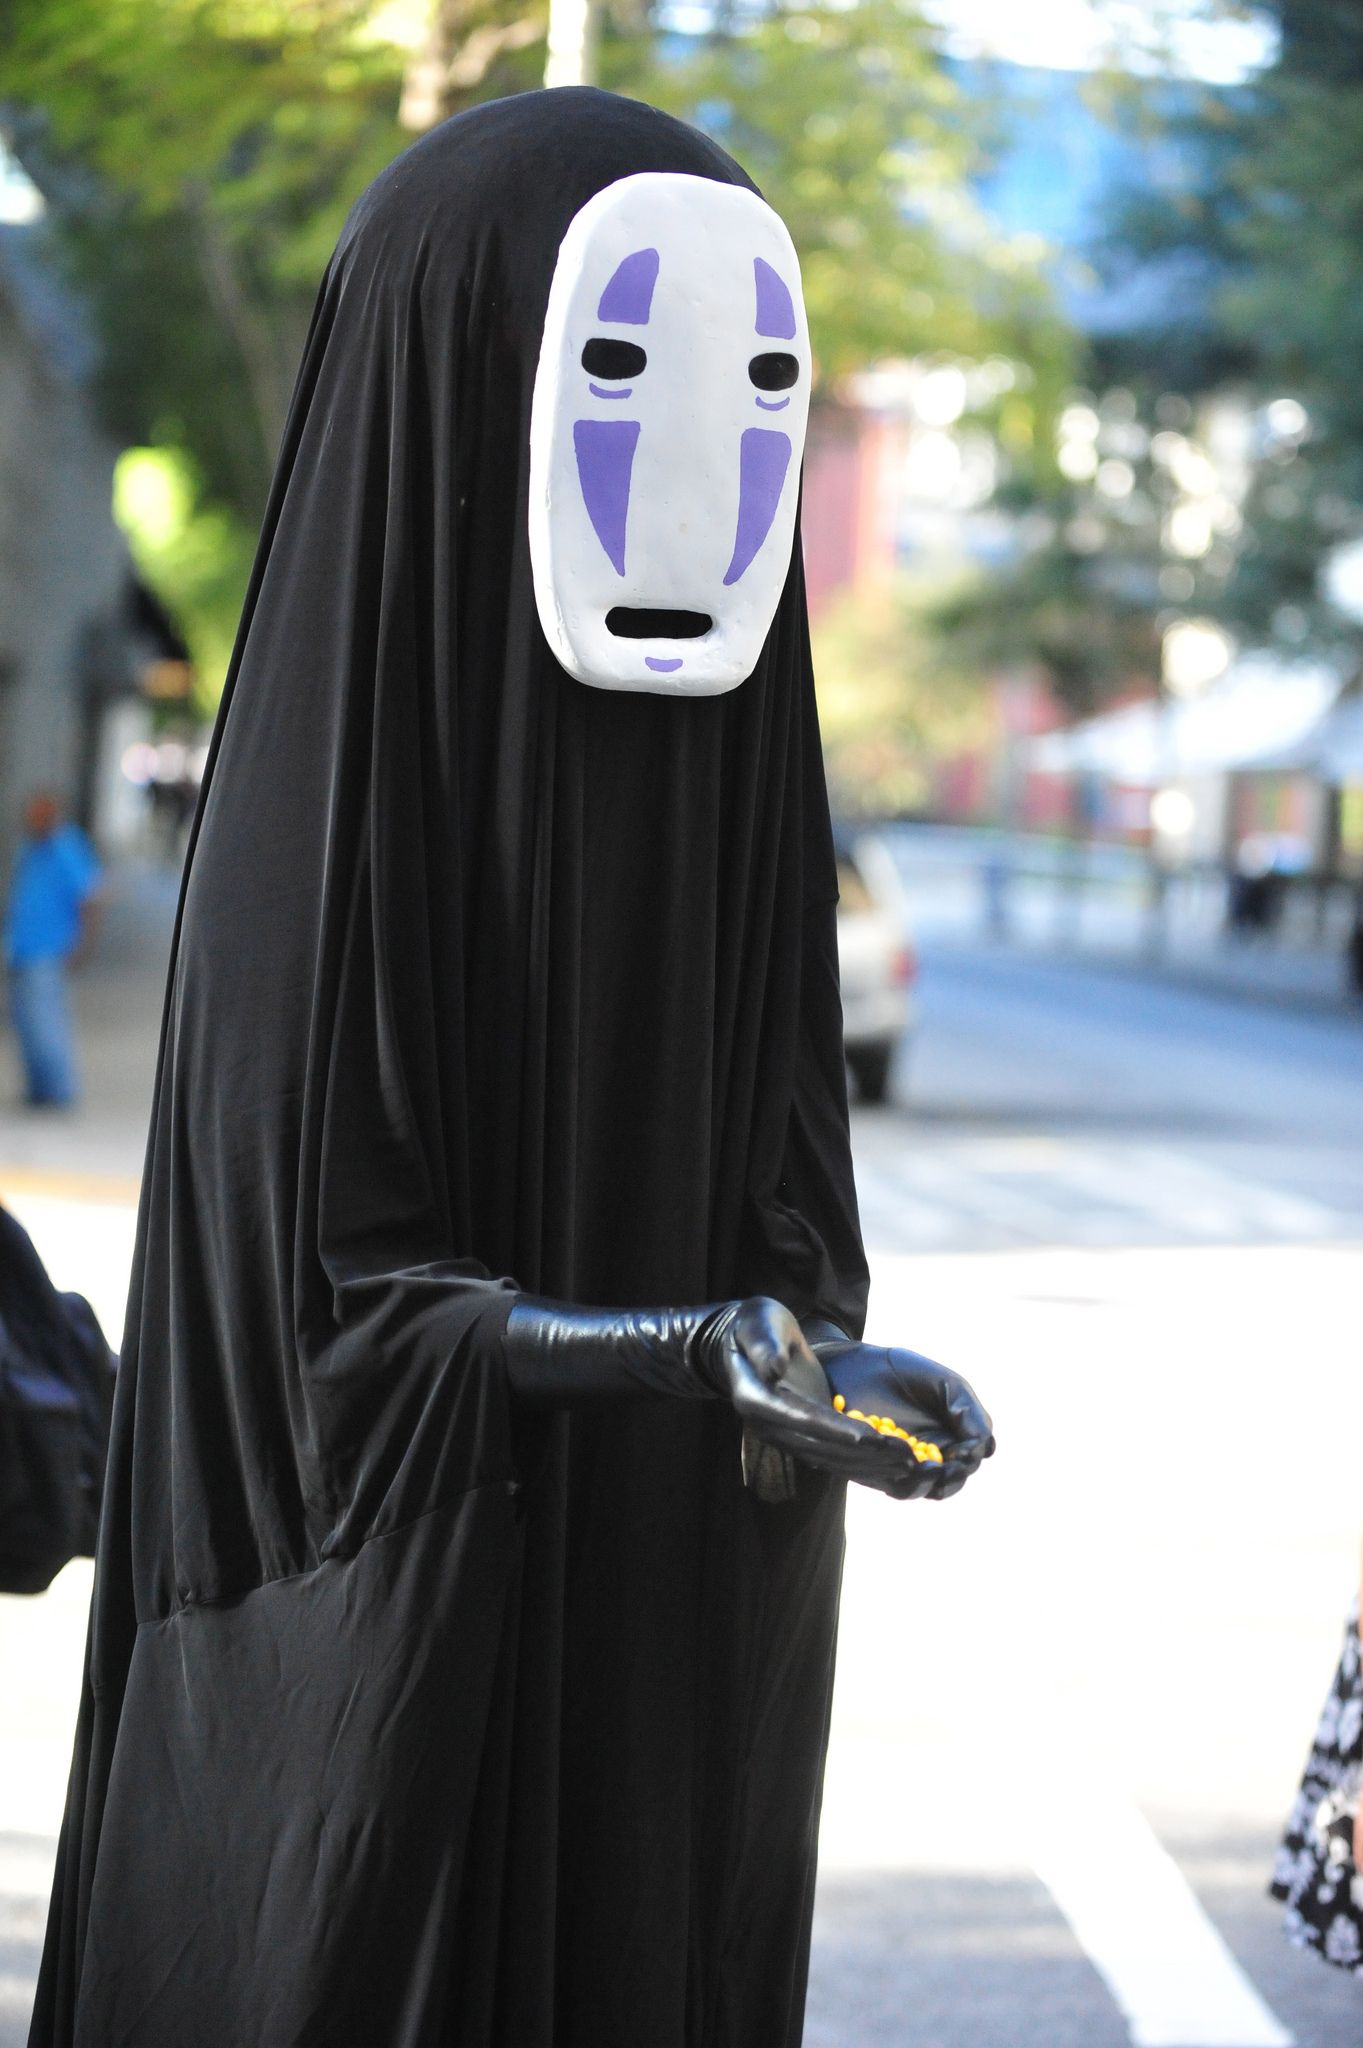 No Face From The Anime Movie Spirited Away Halloween Costume Anime Anime Halloween No Face Costume